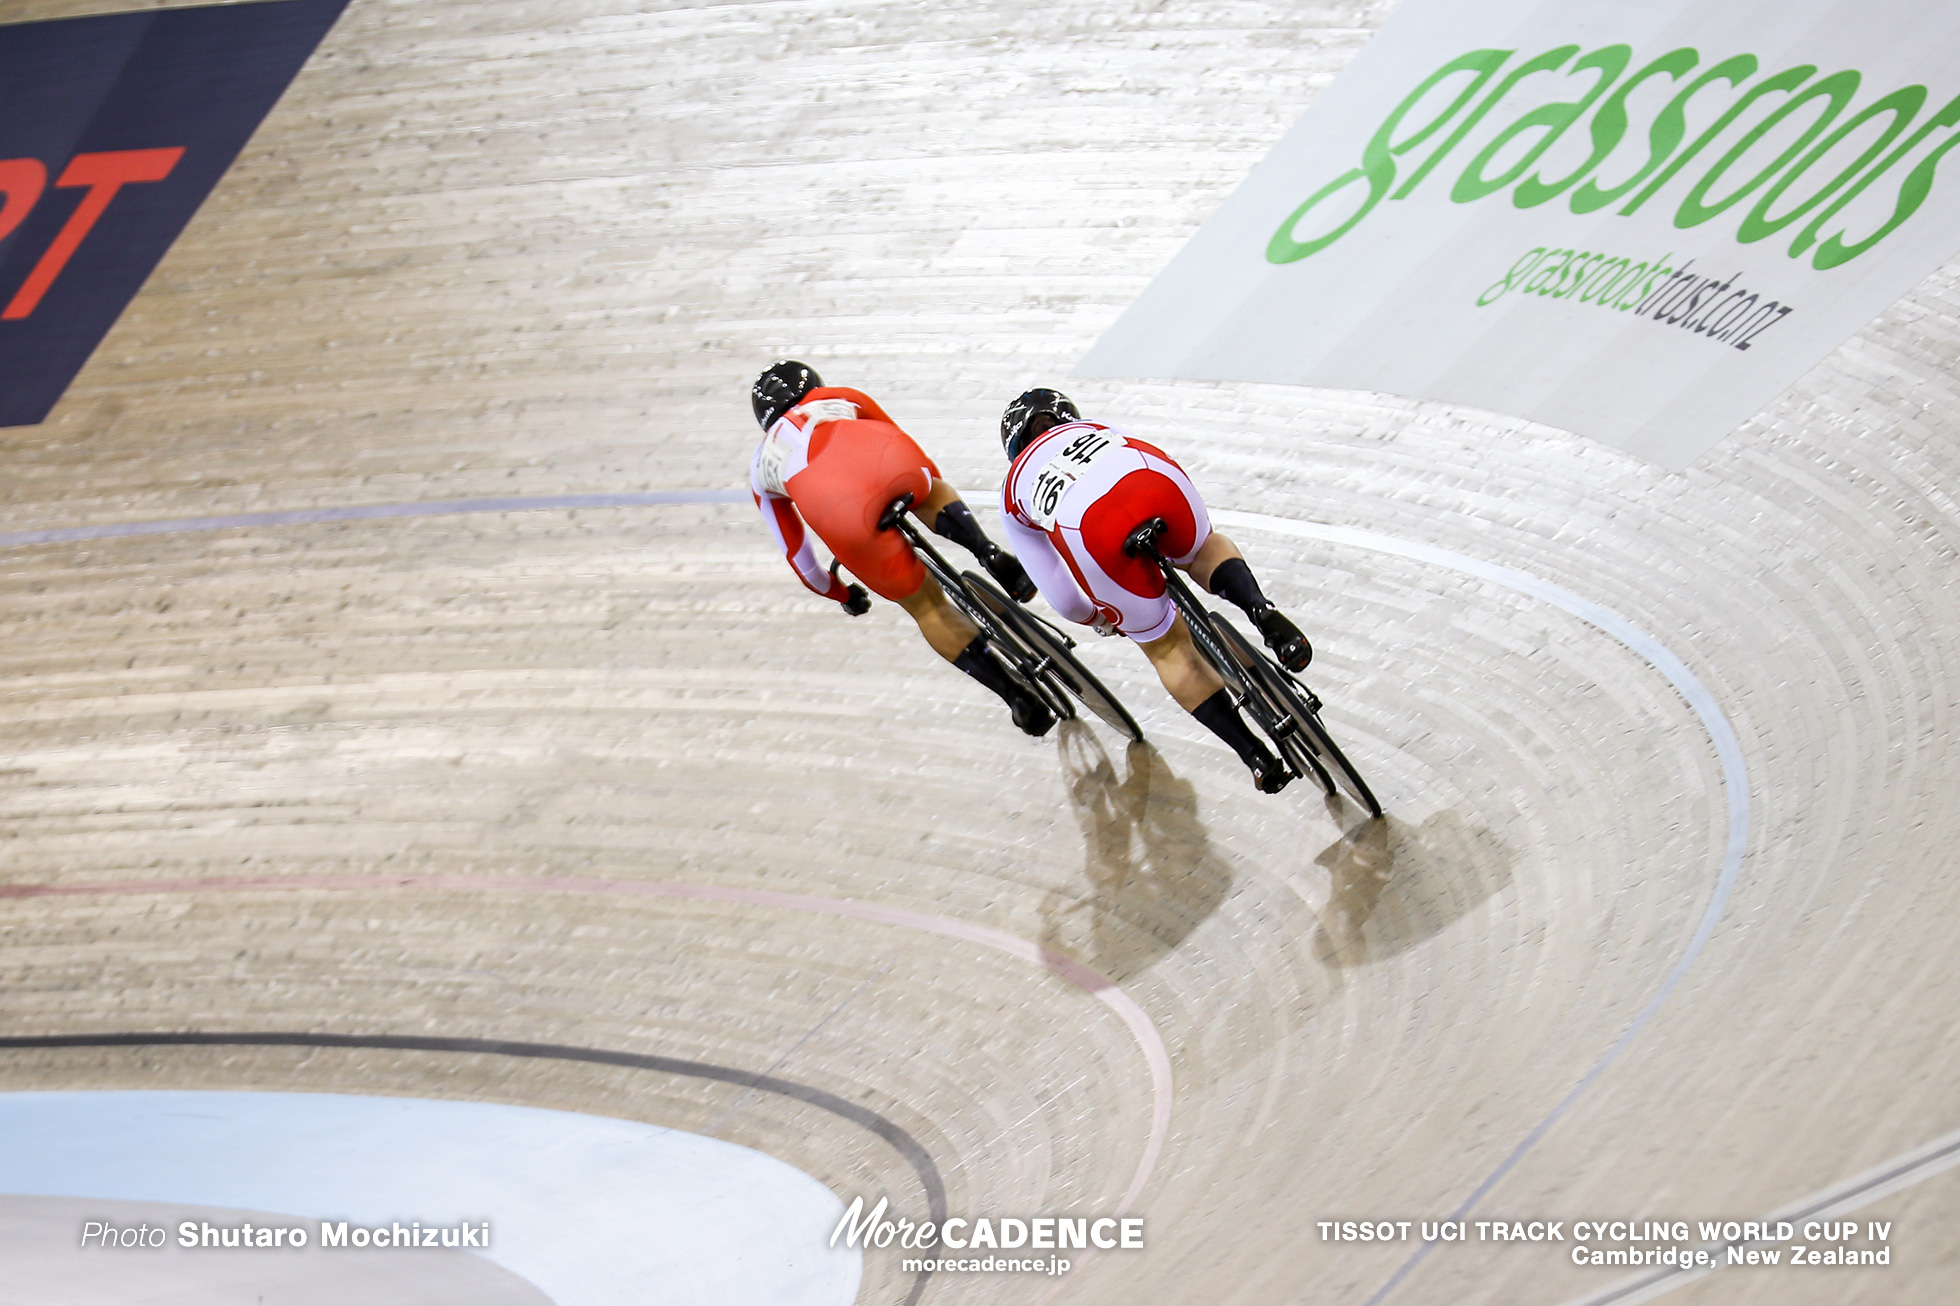 1/16 Finals / Women's Sprint / TISSOT UCI TRACK CYCLING WORLD CUP IV, Cambridge, New Zealand